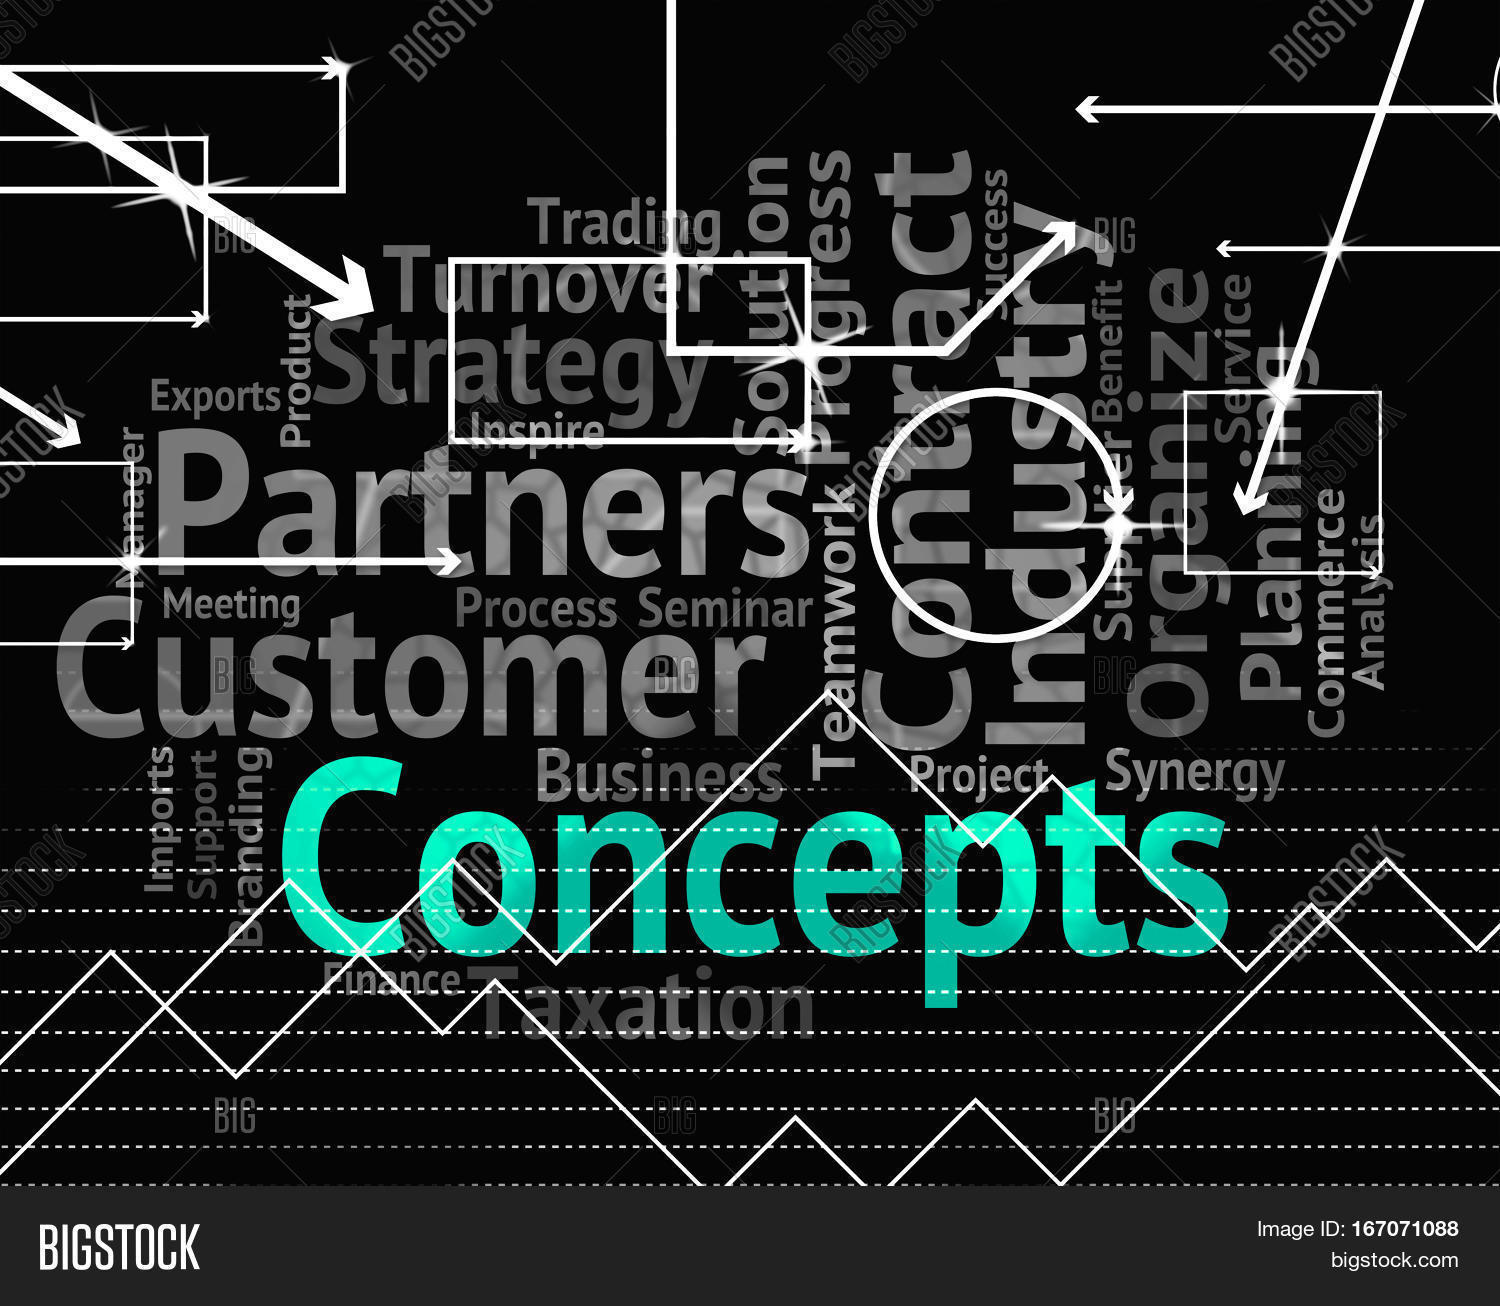 Concepts Word Meaning Image Photo Free Trial Bigstock